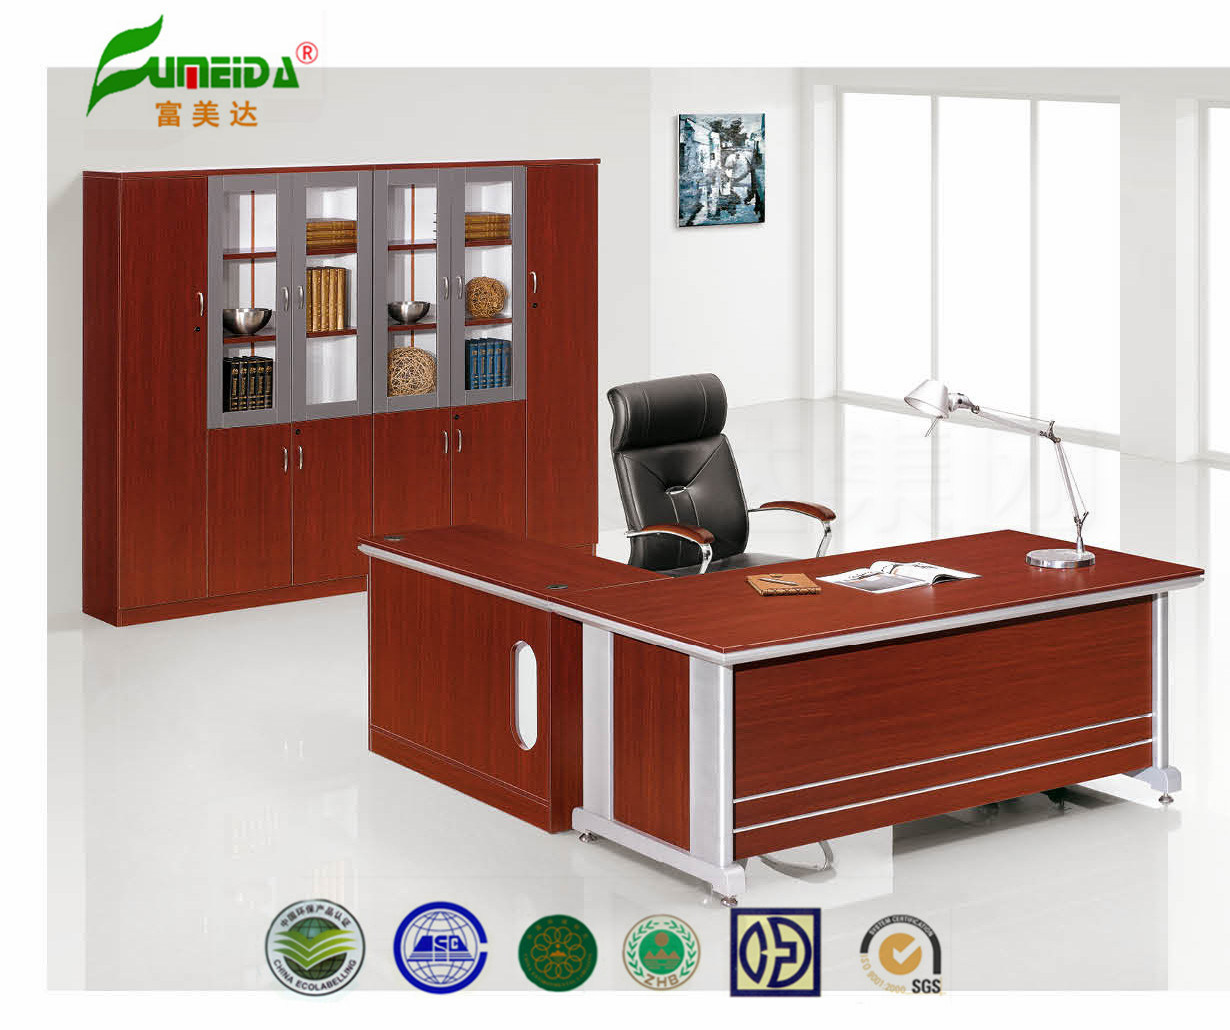 High End Office Furniture >> China Mfc High End Office Table Office Furniture China Furniture